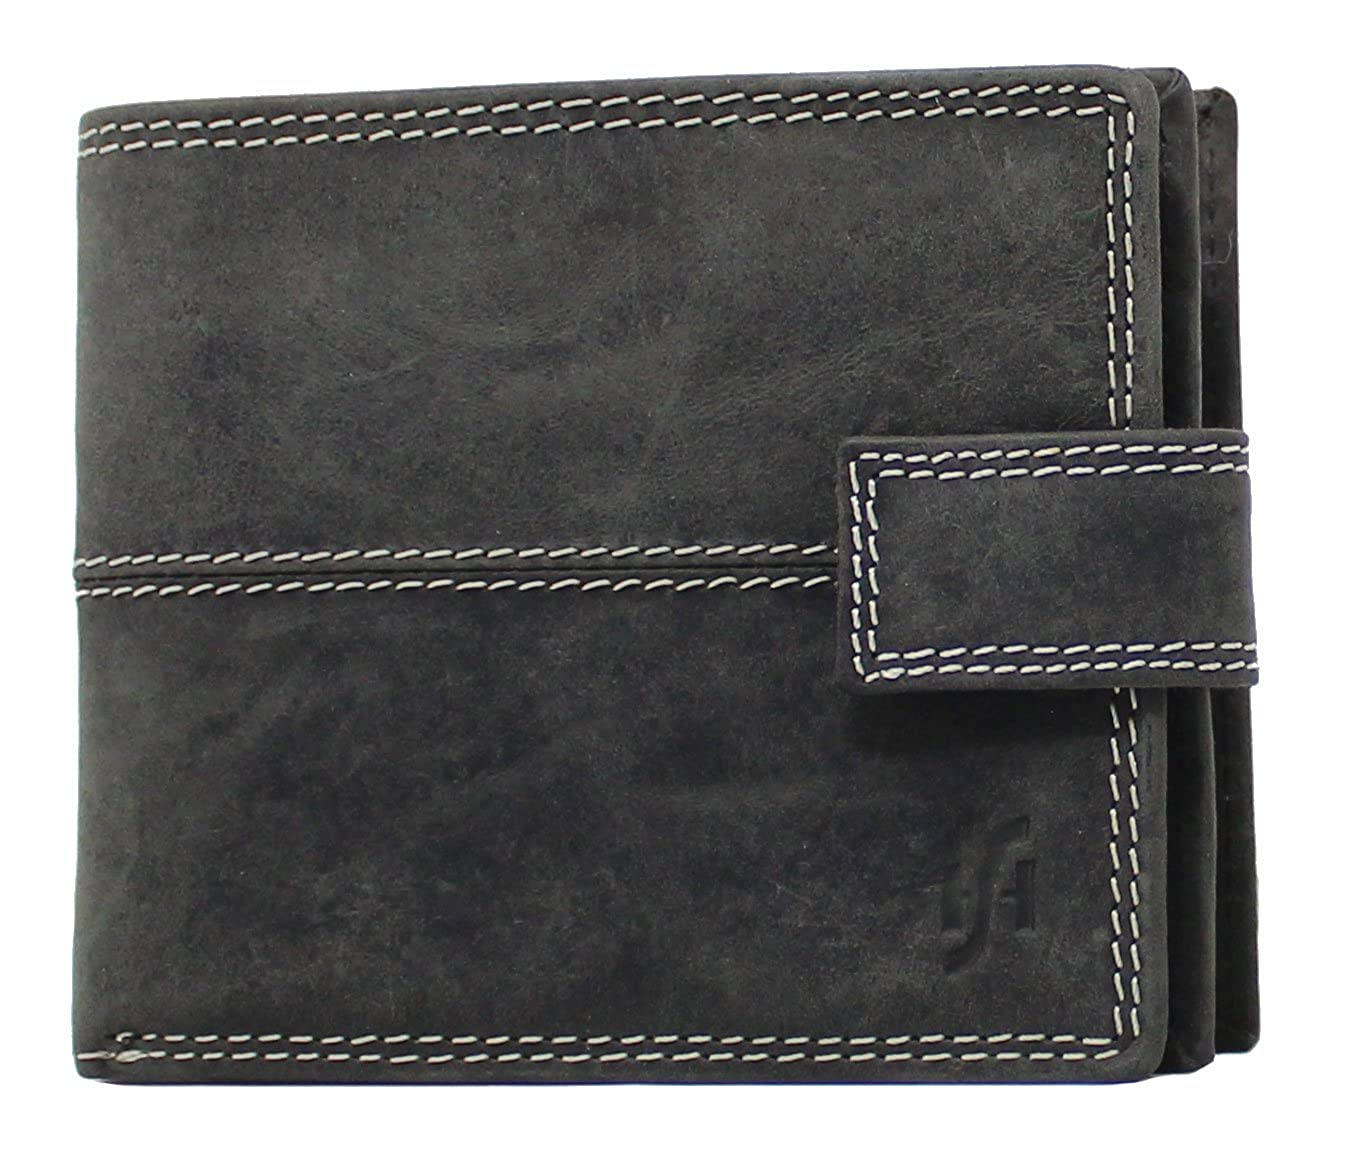 StarHide RFID Blocking Wallet For Men | Genuine Distressed Hunter Leather | Large Zip Around Coin Pocket Purse | Designed For Photo ID, Credit Cards And Banknotes - 1044 1044/2